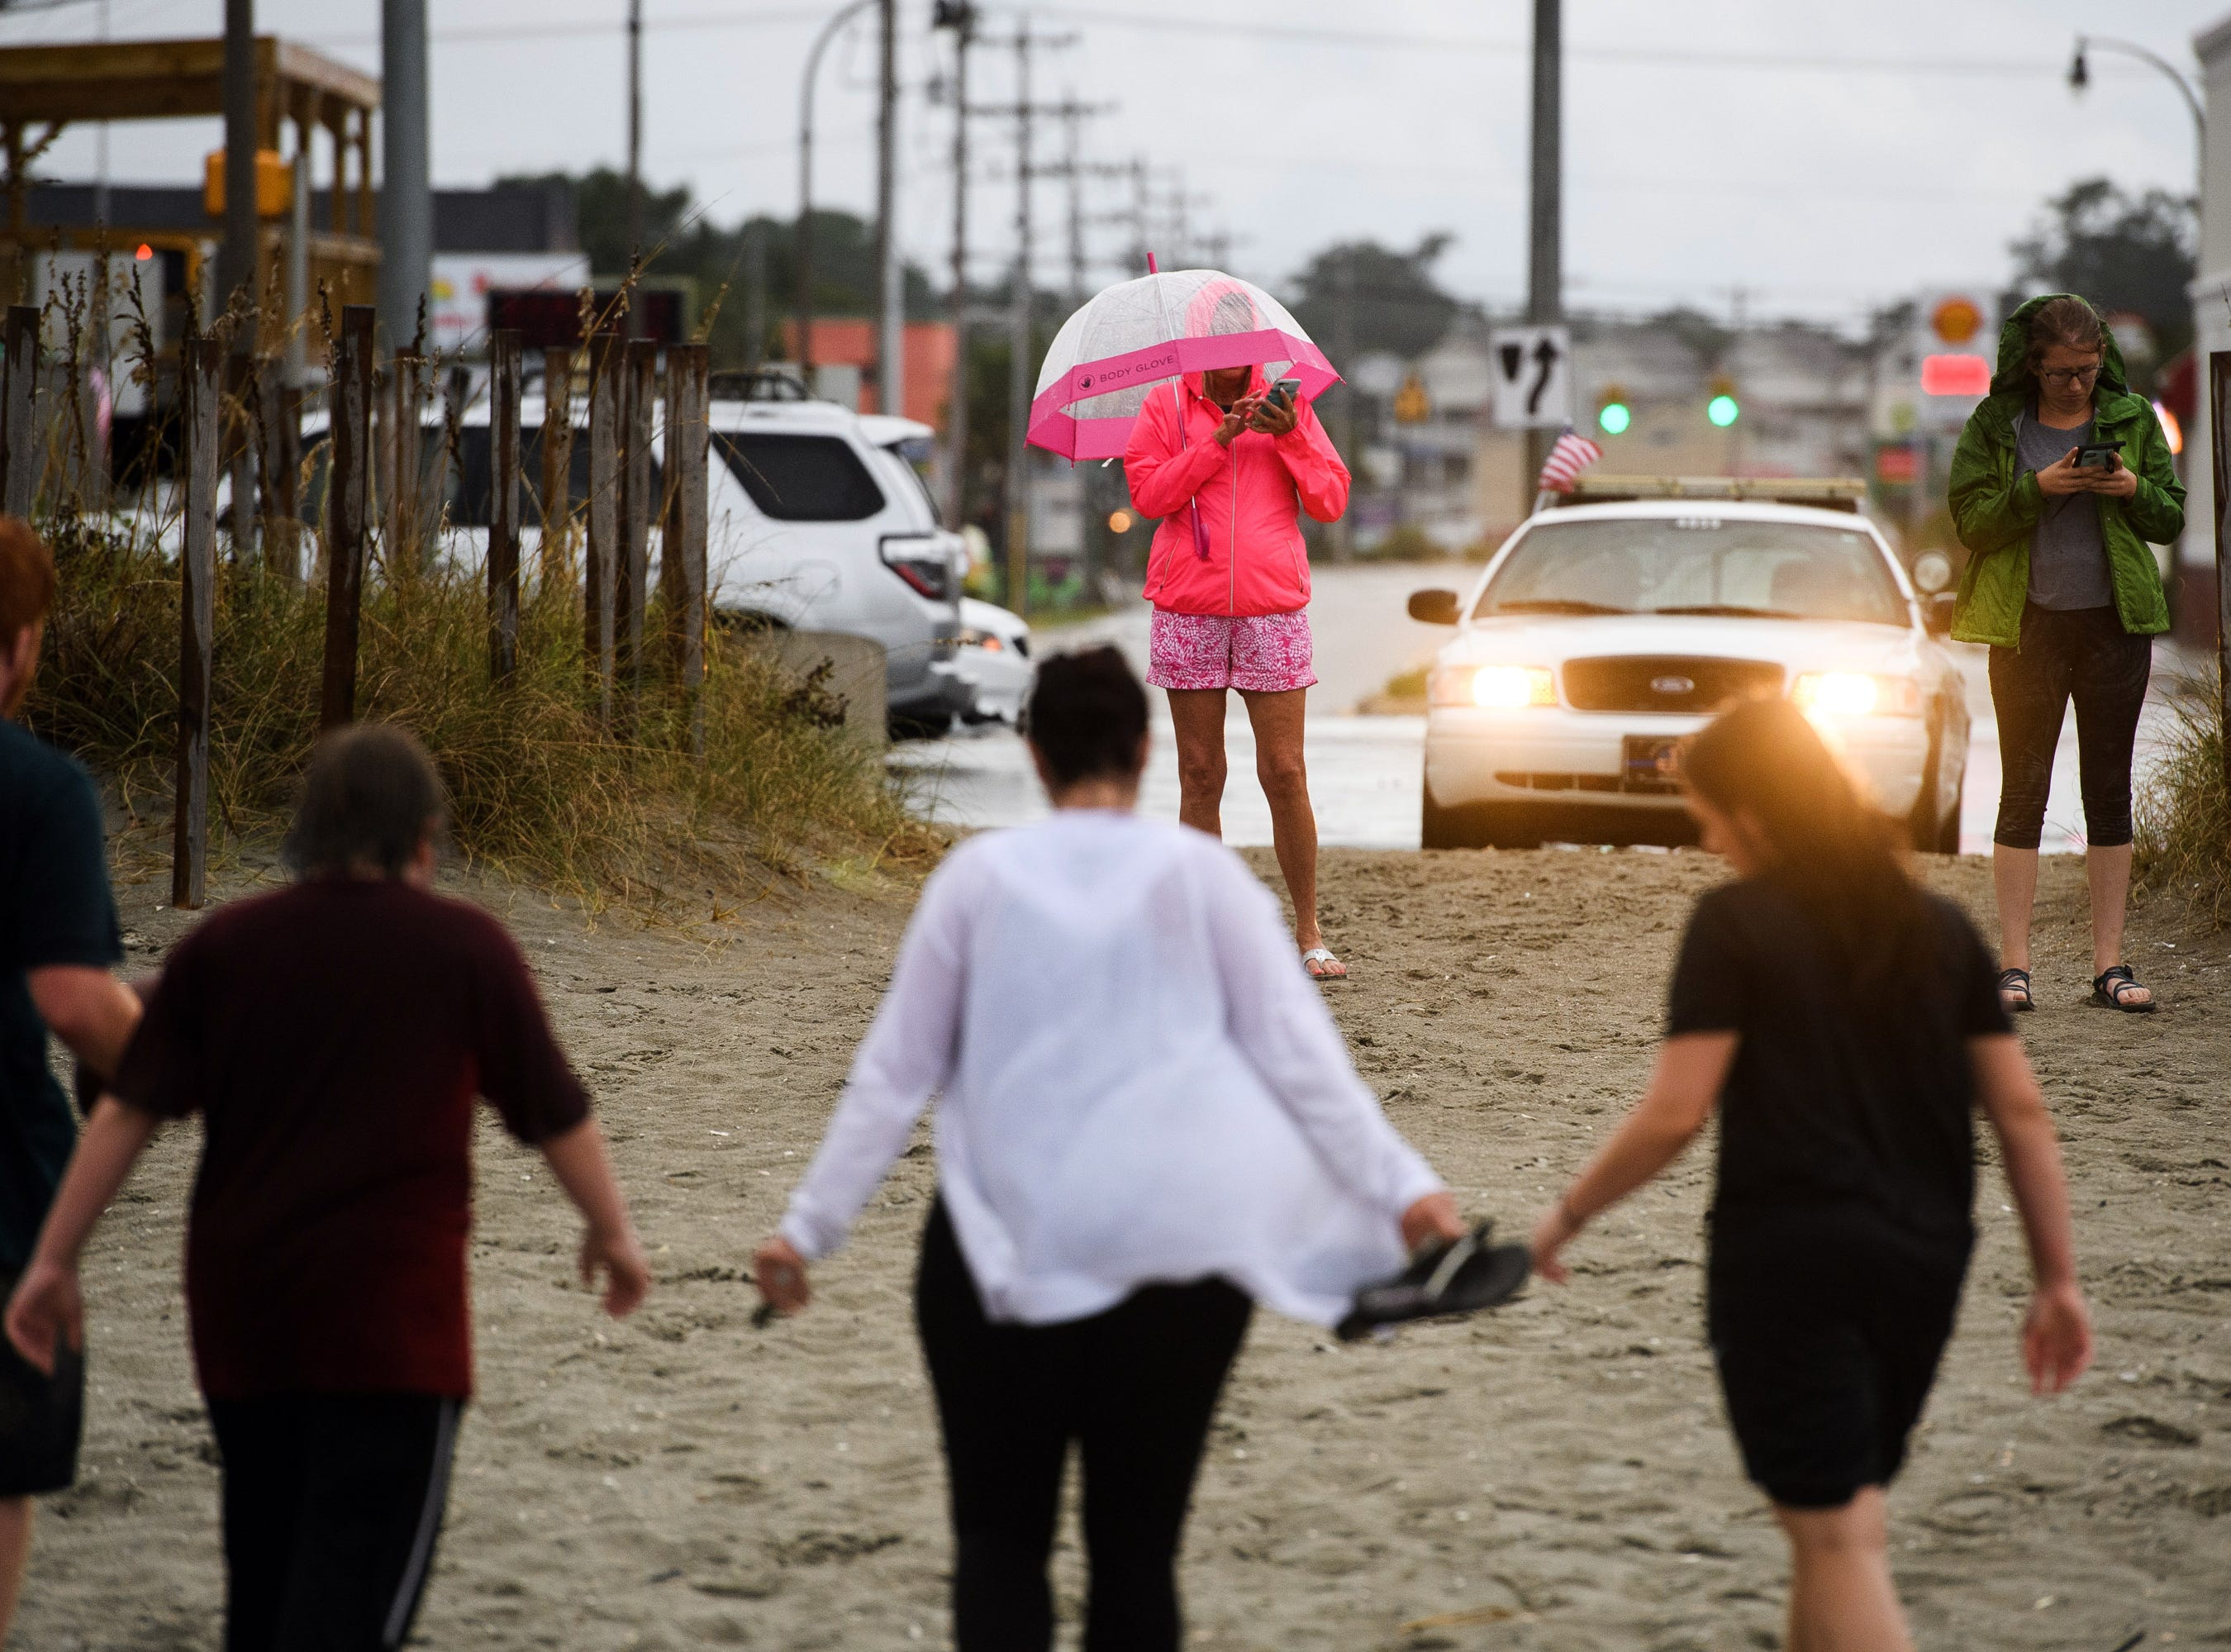 Sept 13, 2018, North Myrtle Beach, SC, Beachgoers leave after being informed of a curfew due to Hurricane Florence.